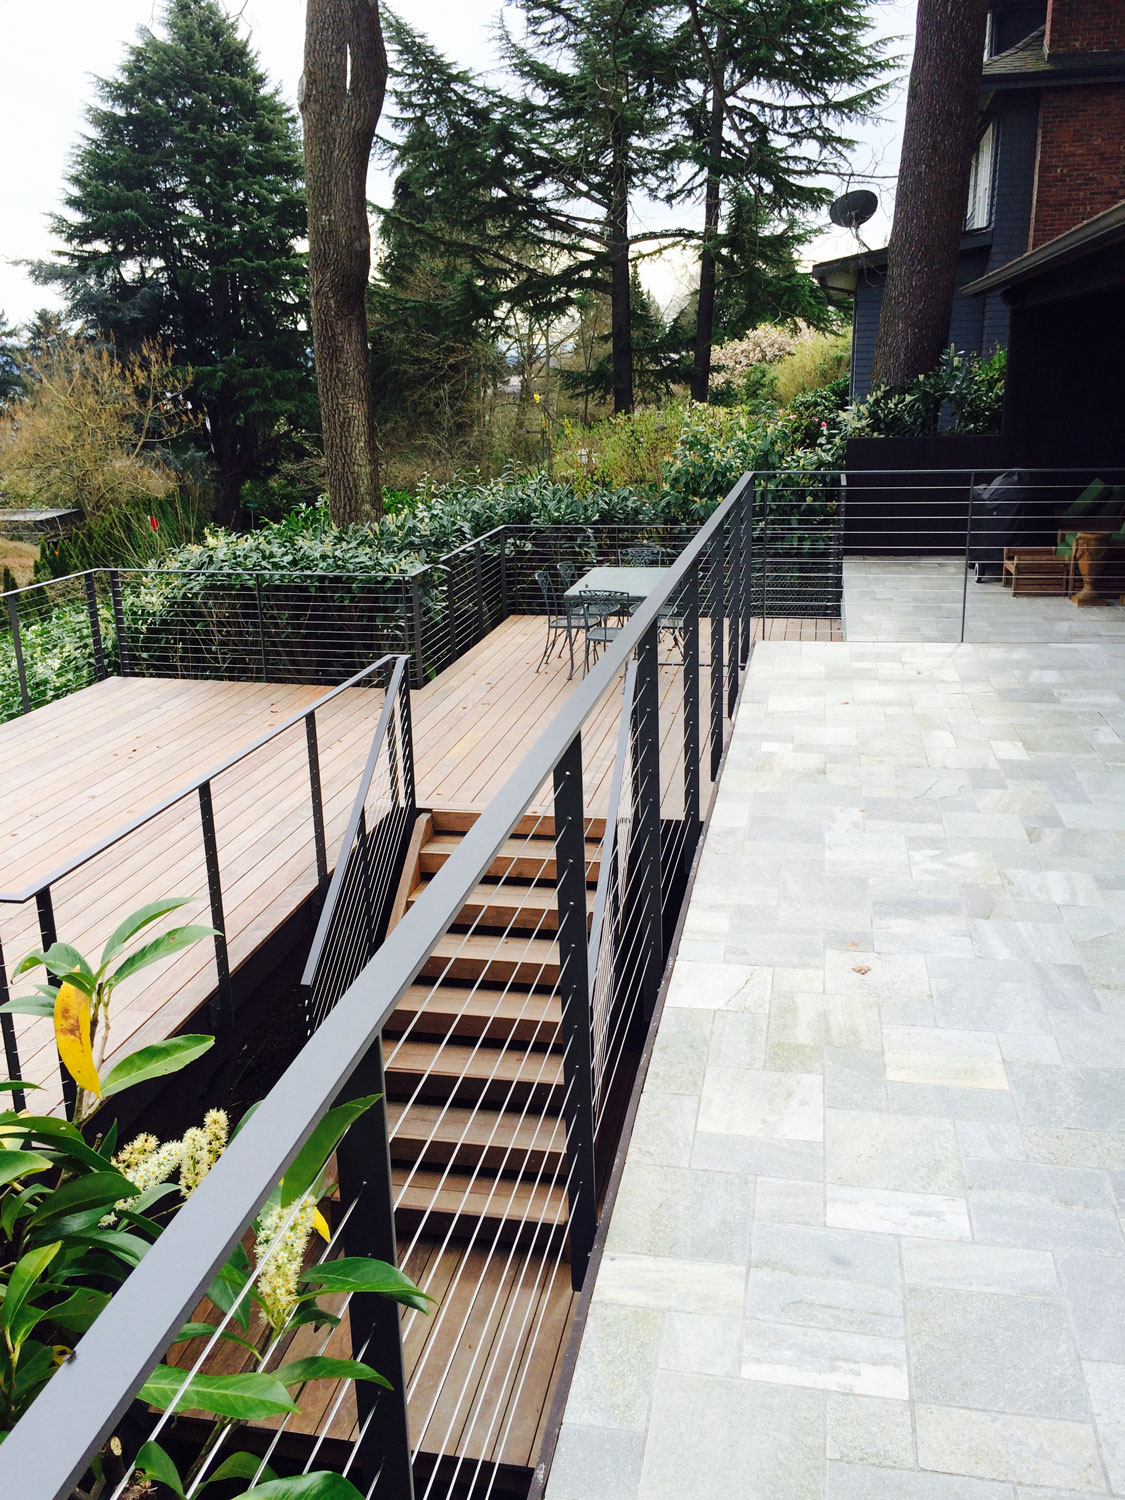 Cable Rail for Large Deck - Railings and Handrail for Stairs - Seattle, WA